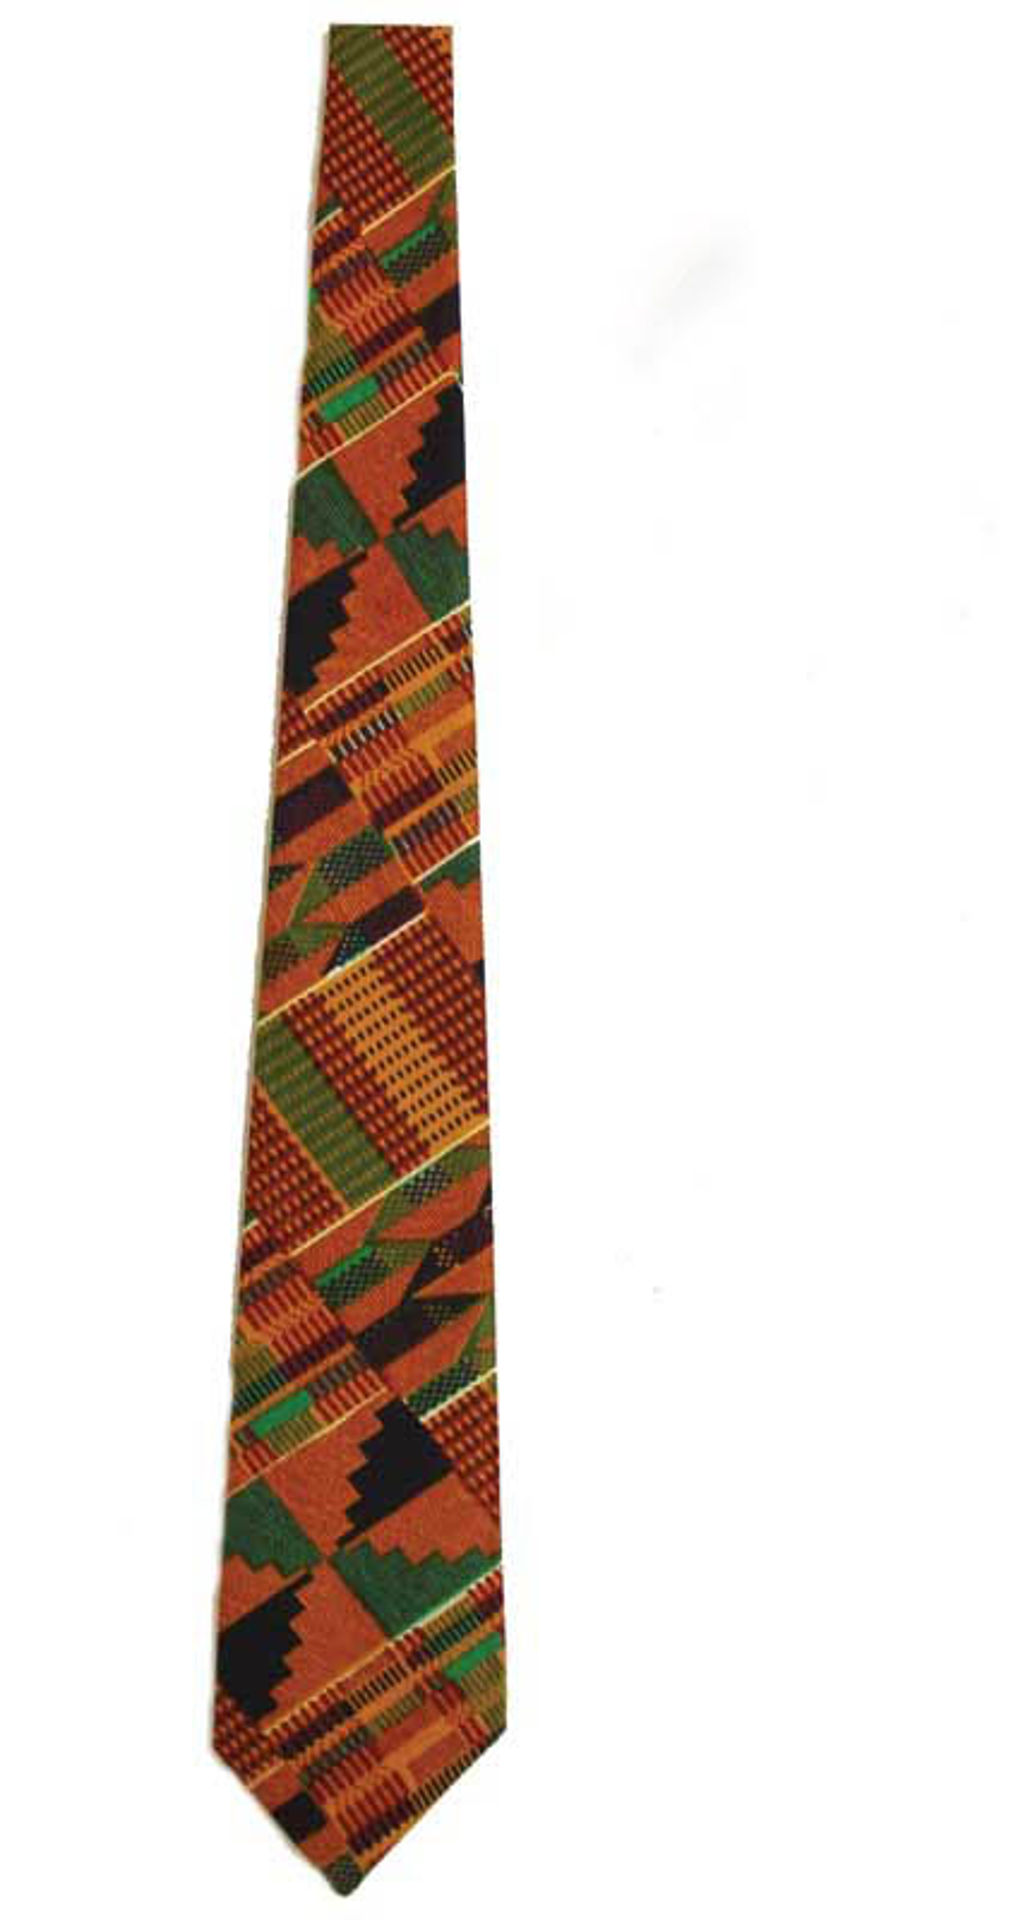 Picture of Kente Tie - Style #2